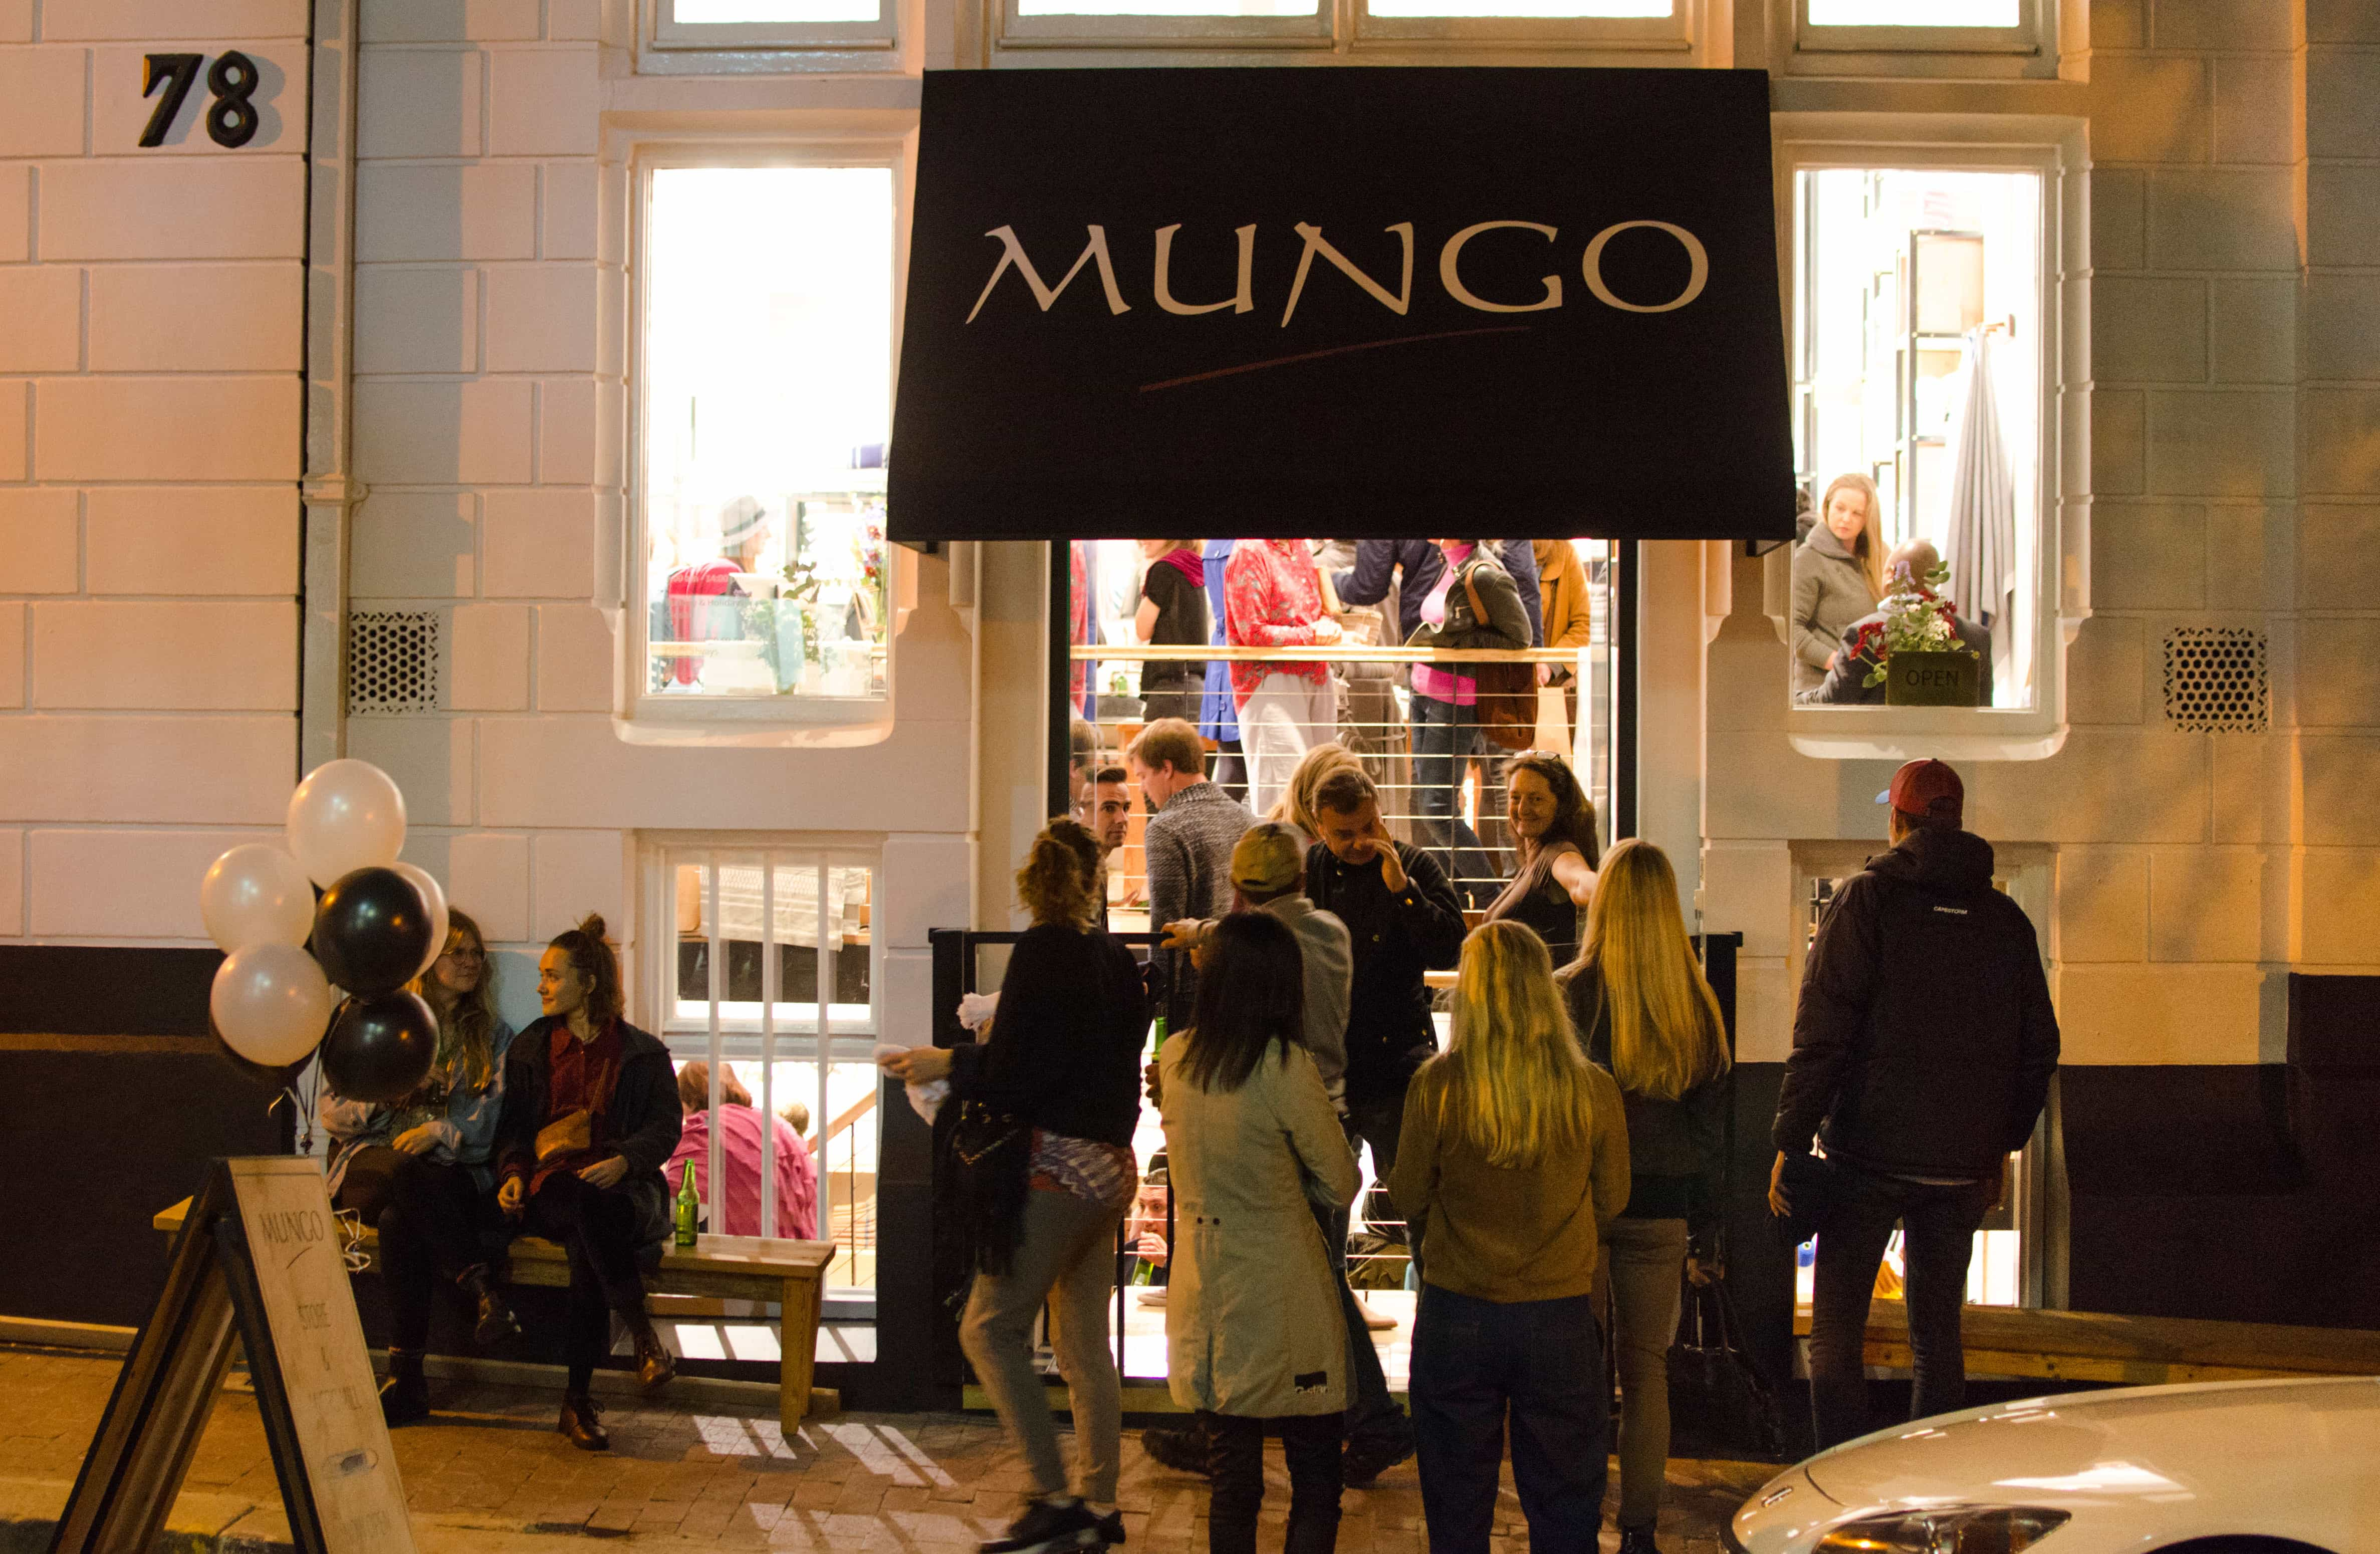 Mungo textiles new store opening Cape Town